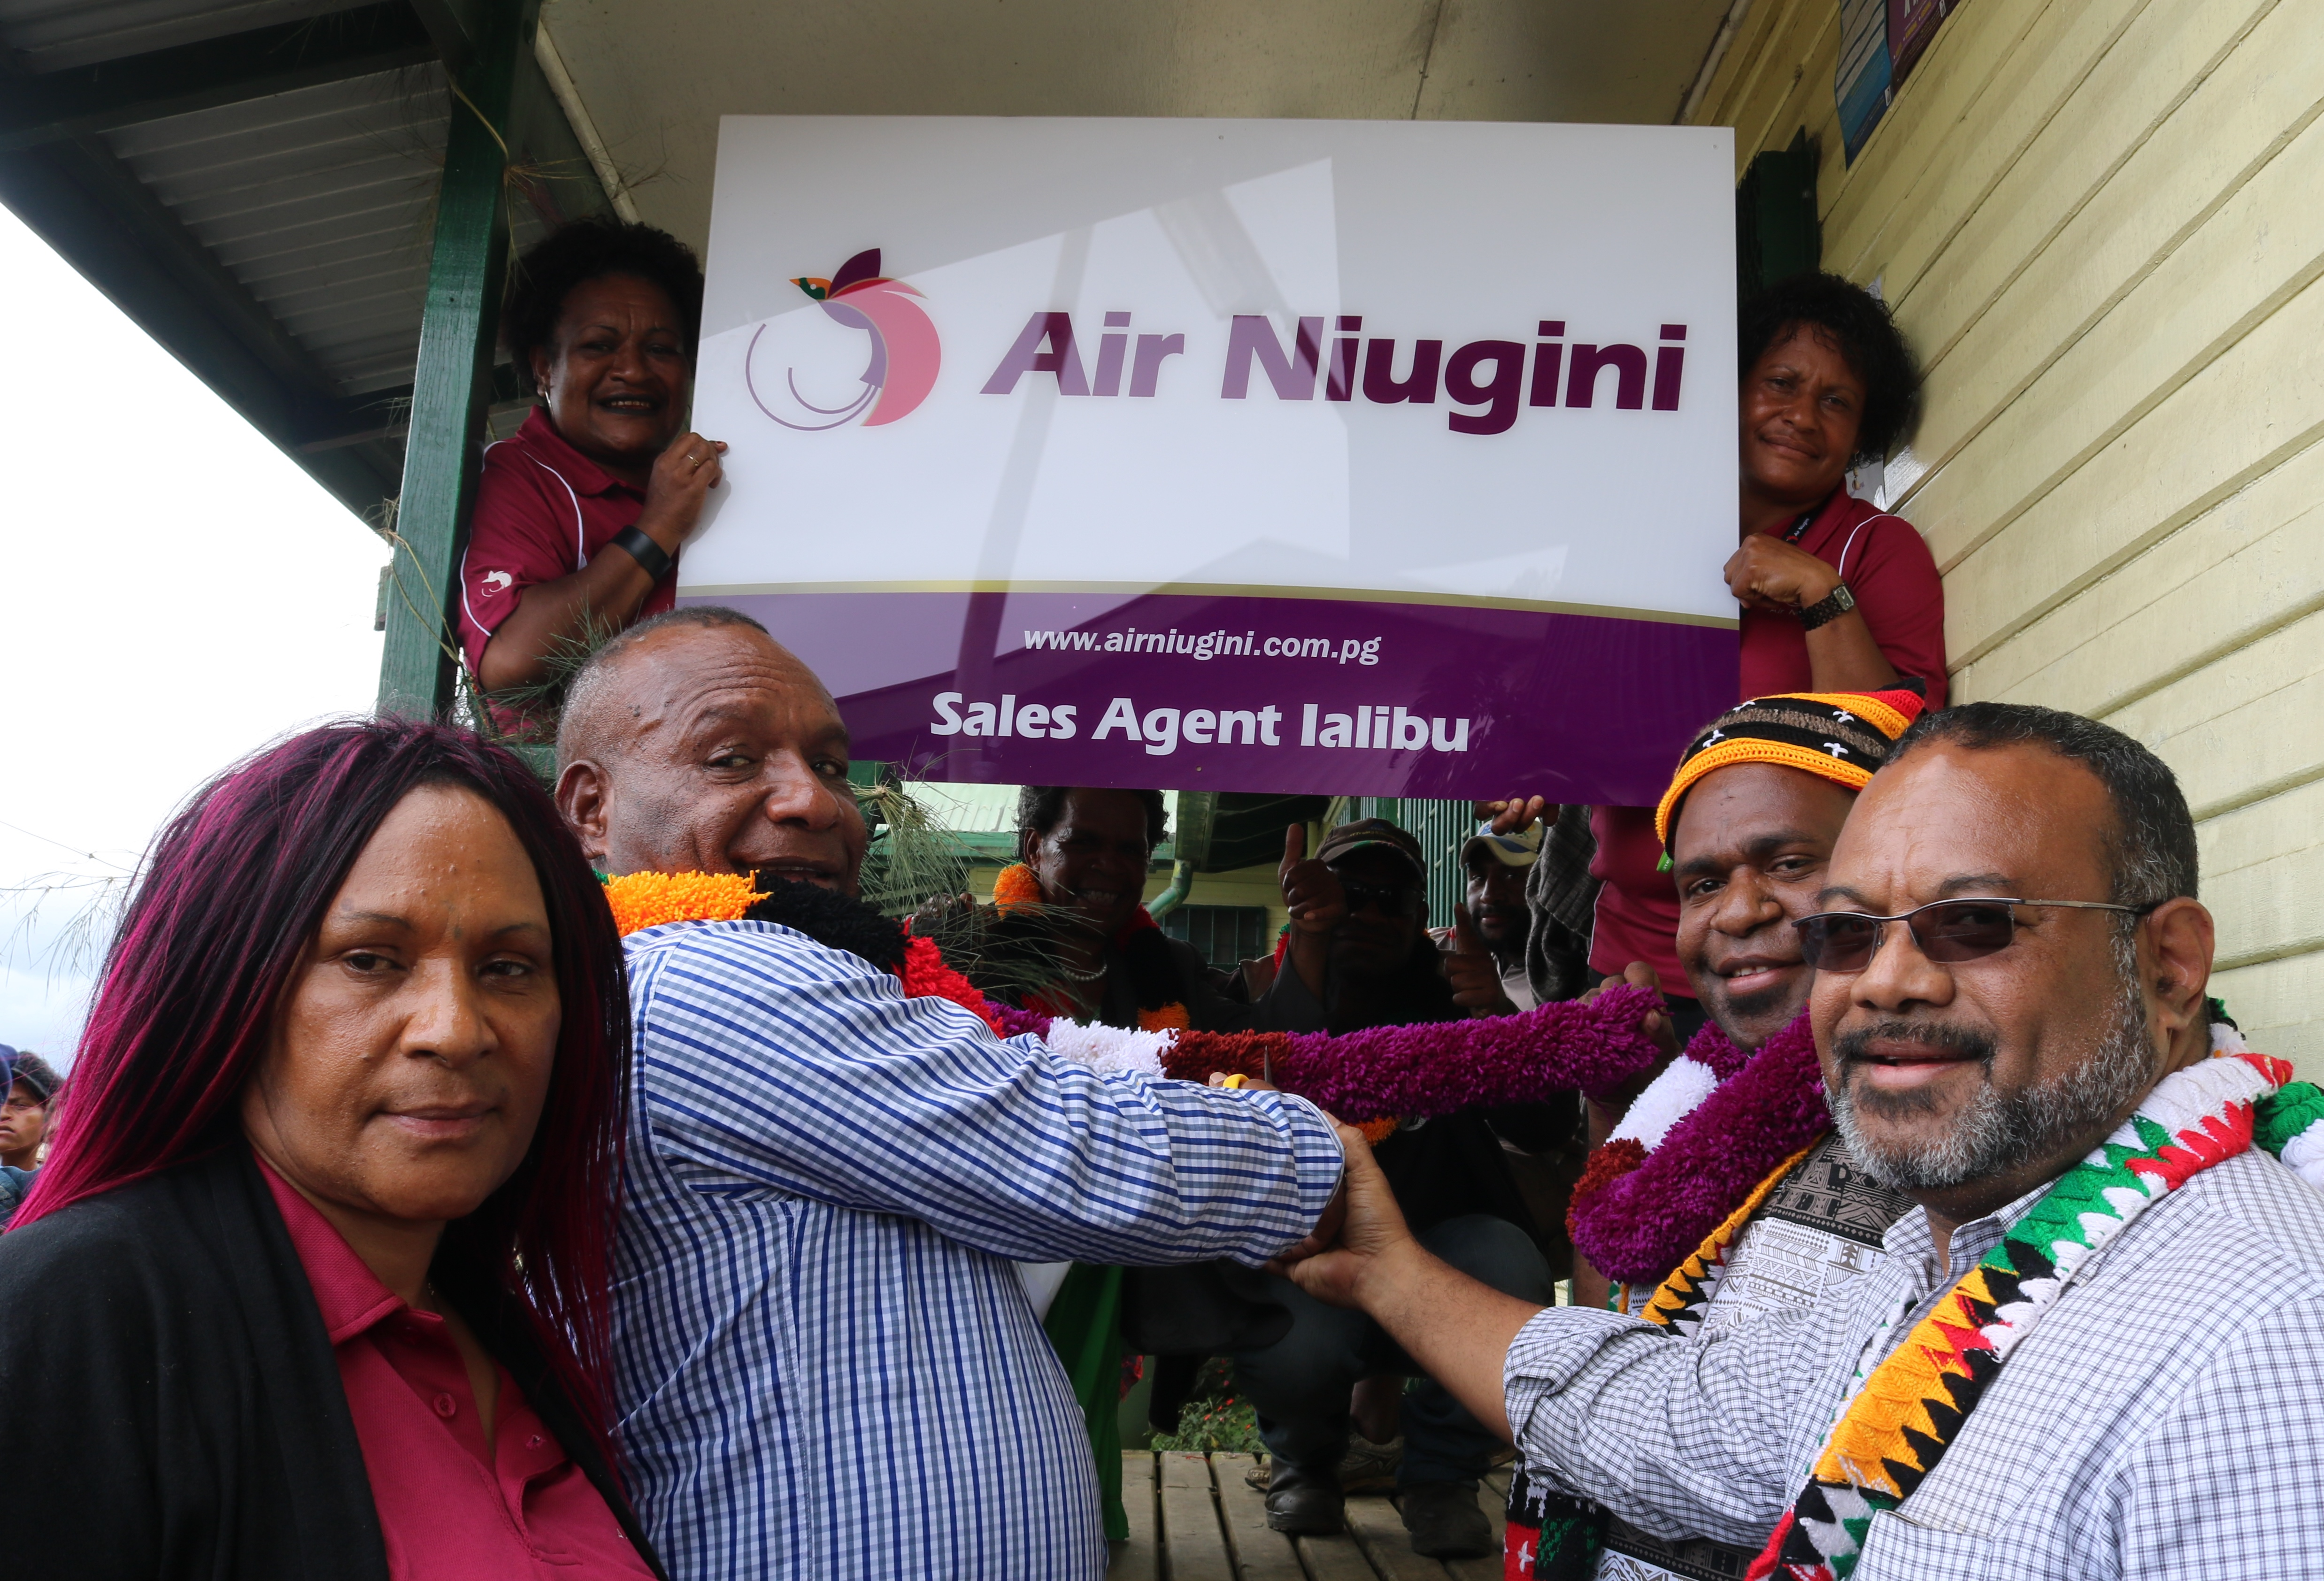 Air Niugini Launches A Rural Sales Agent In Ialibu